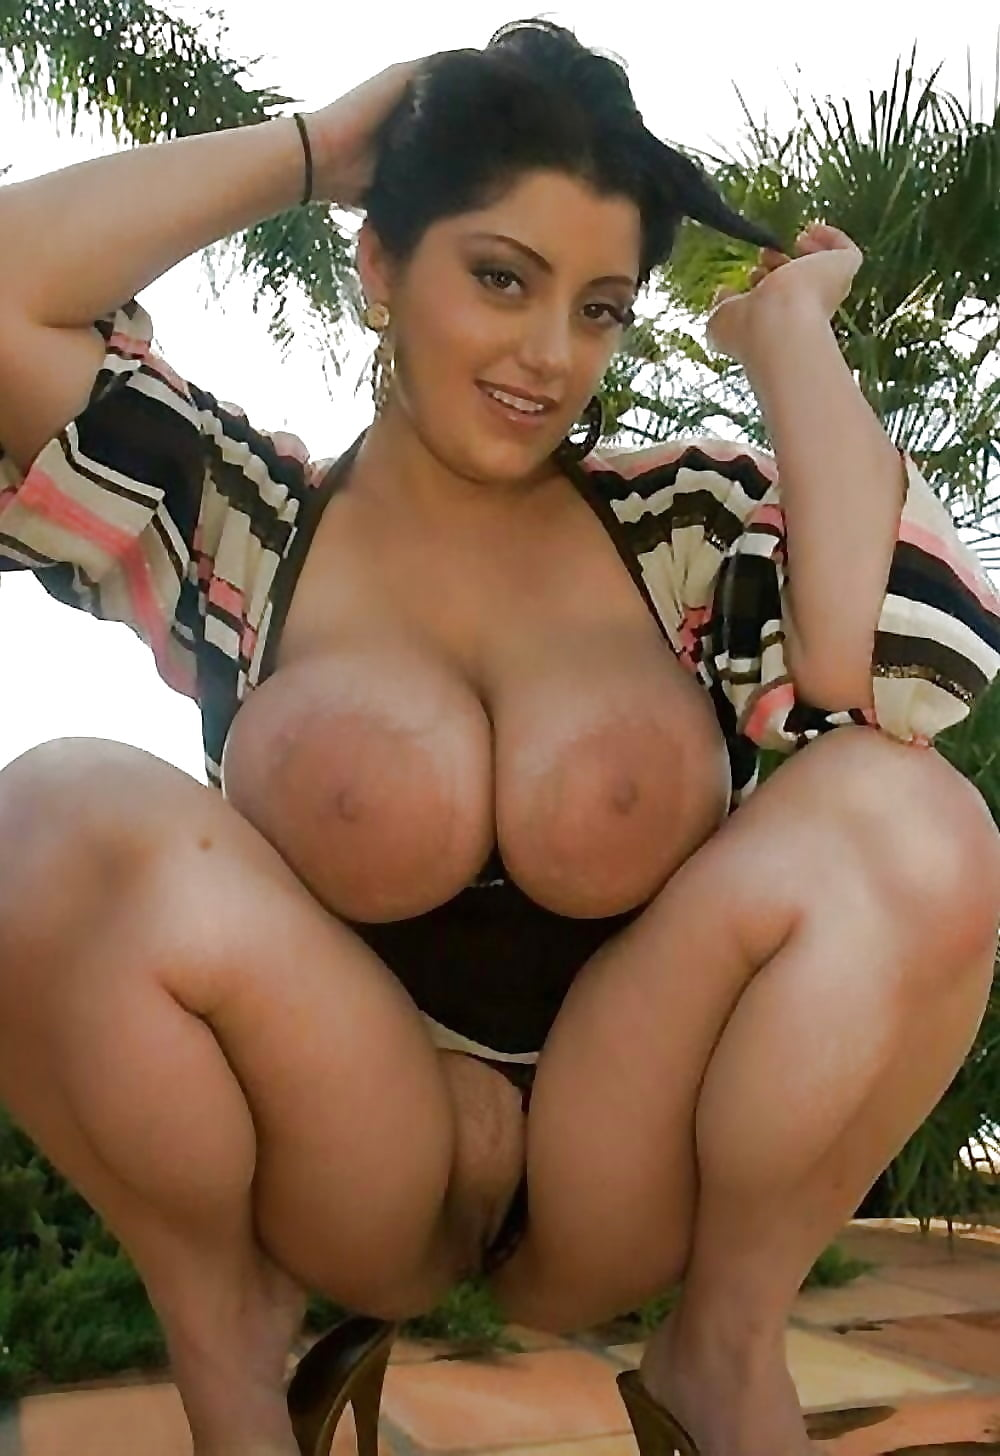 curvy-busty-brazilian-porn-star-wars-the-clone-hentai